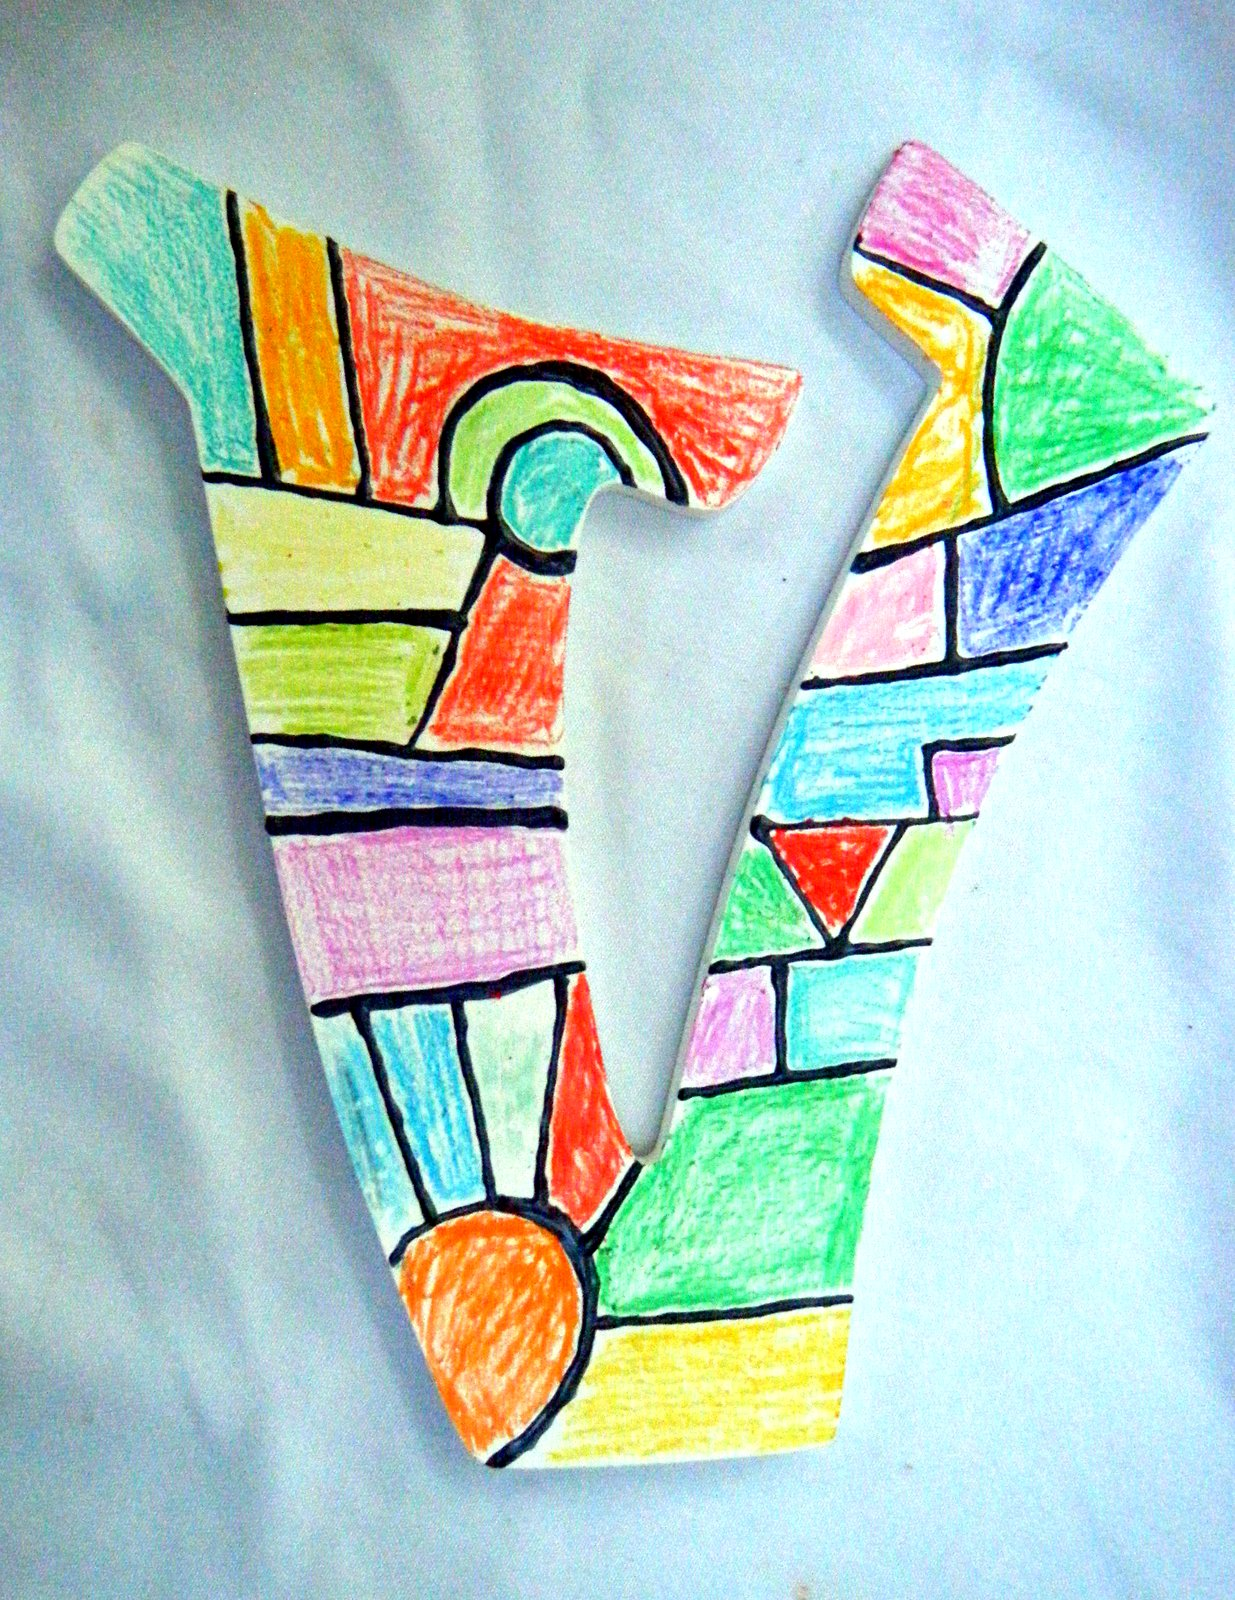 Surprise Stained Glass Effect On Wooden Letters With Crayons Hobby Hound Diy Electronics Projects2 Crafty Mountain Mama Crafts Projects Tips And Tricks